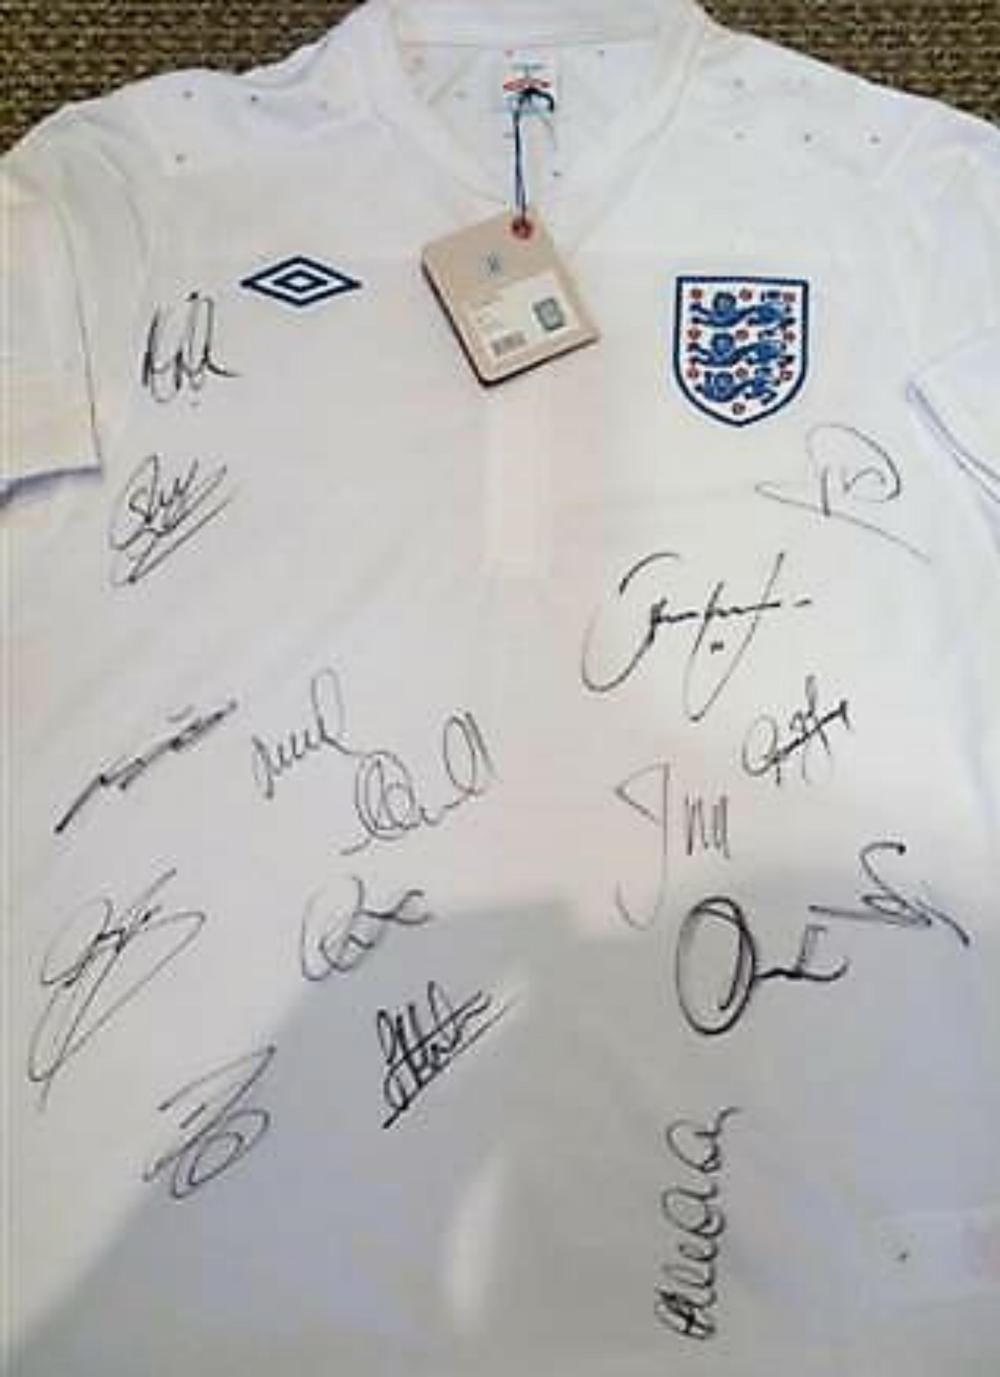 Lot 290: Multi Signed England Football Shirt from 2011/2012